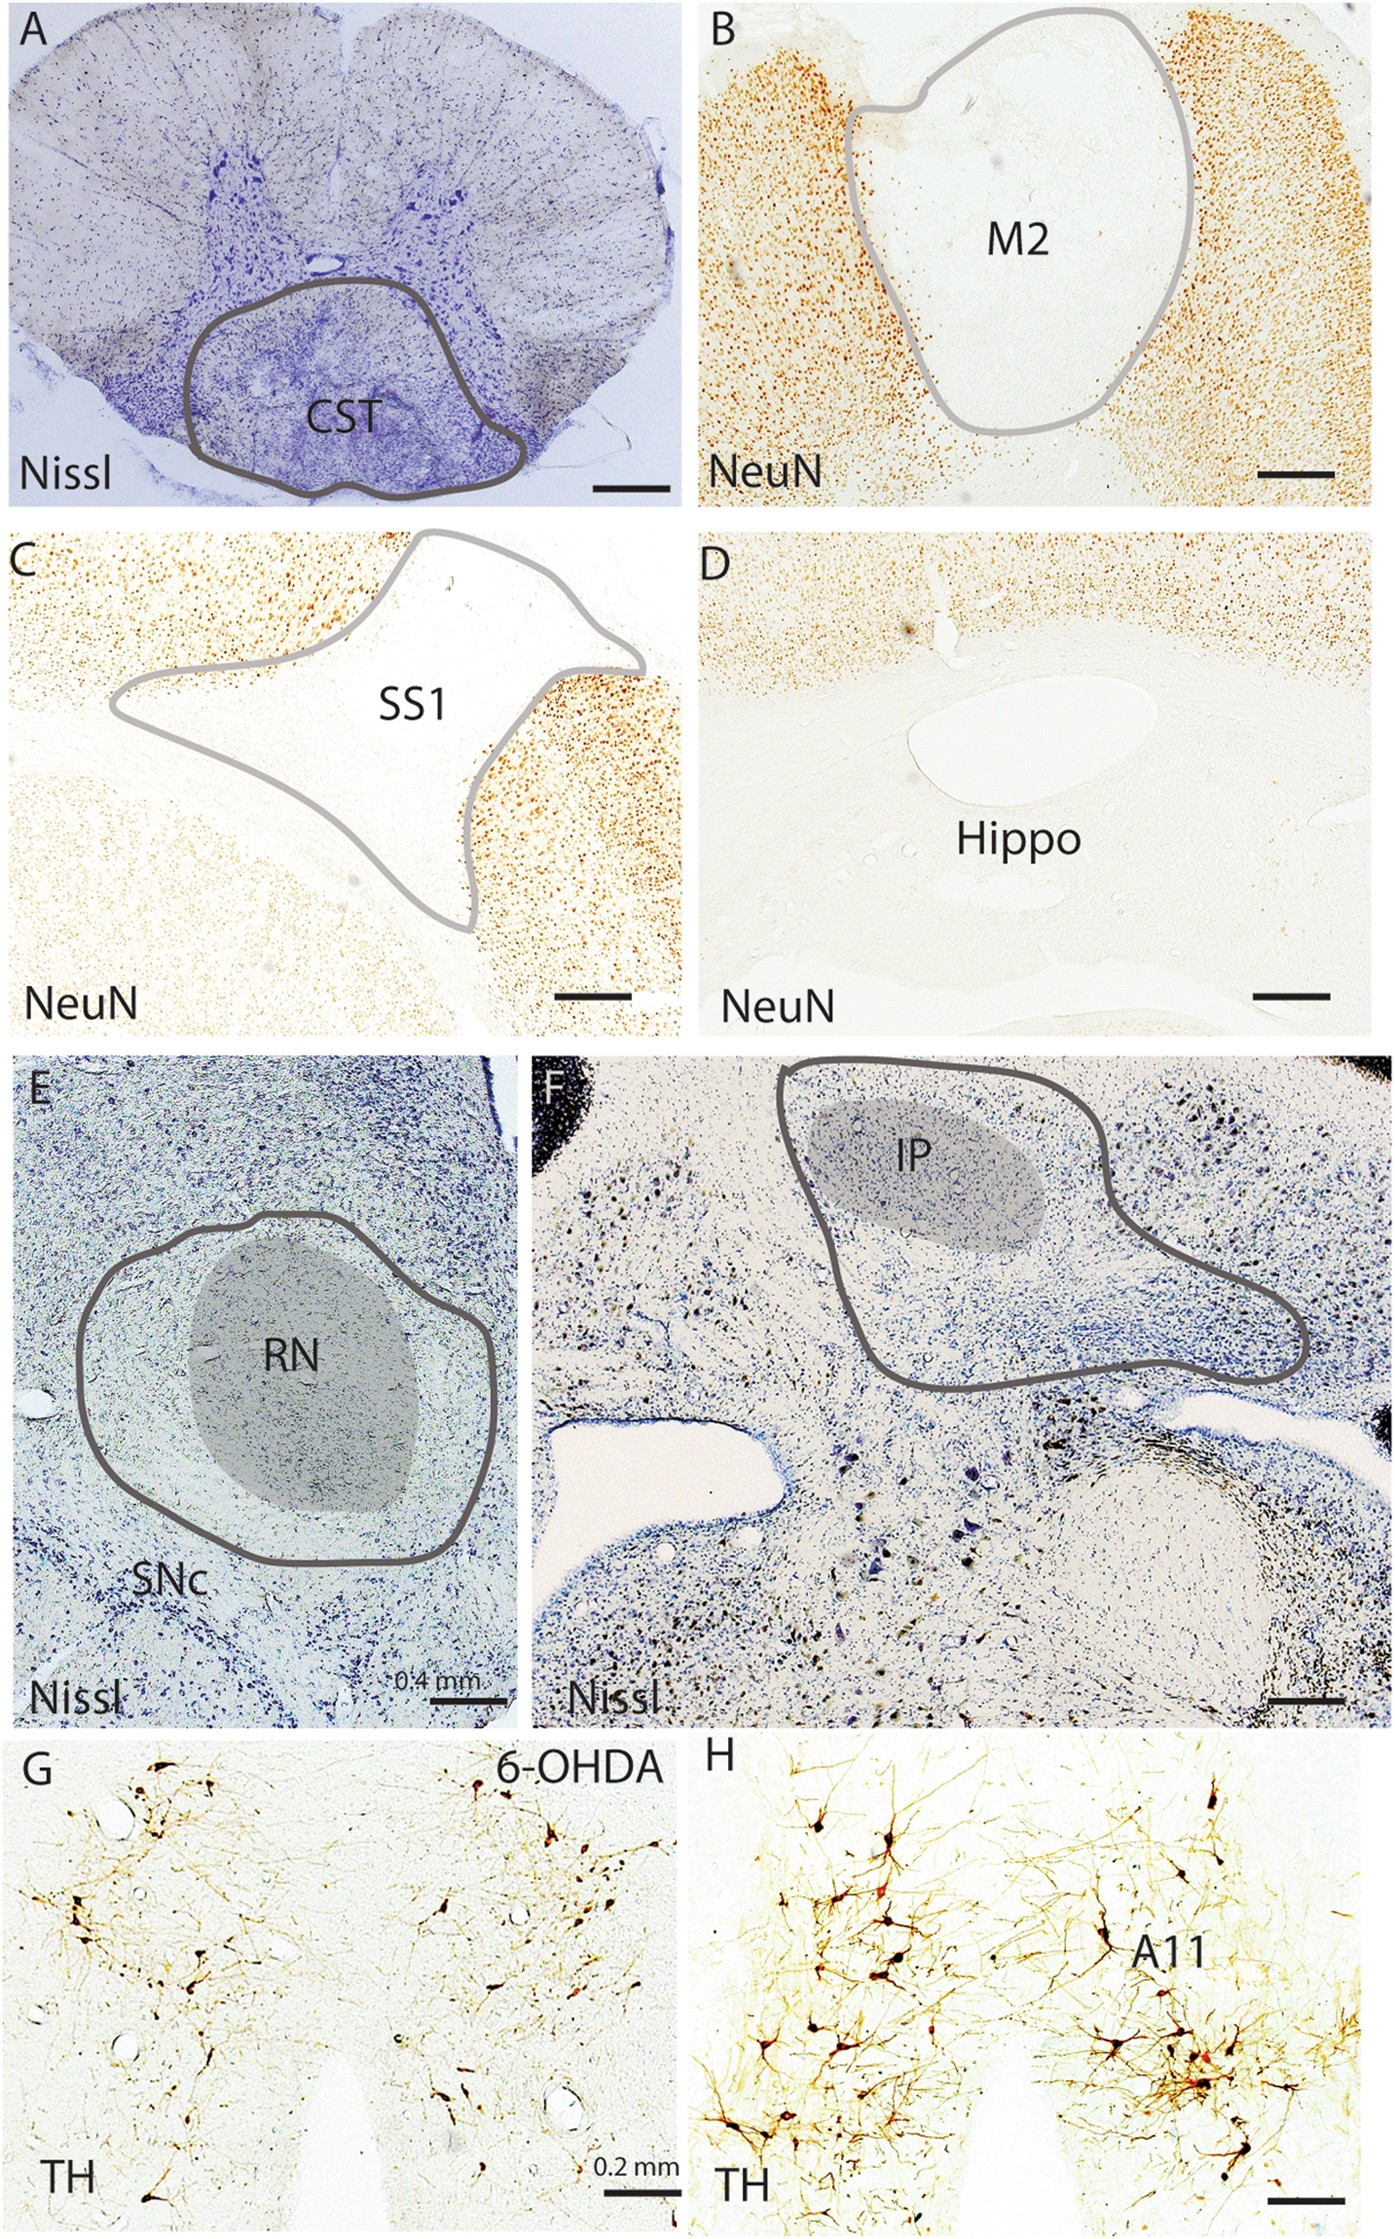 Targeted Disruption Of Supraspinal Motor Circuitry Reveals A Between Unilateral Circuits And Bilateral Its Functions Distributed Network Underlying Restless Legs Syndrome Rls Like Movements In The Rat